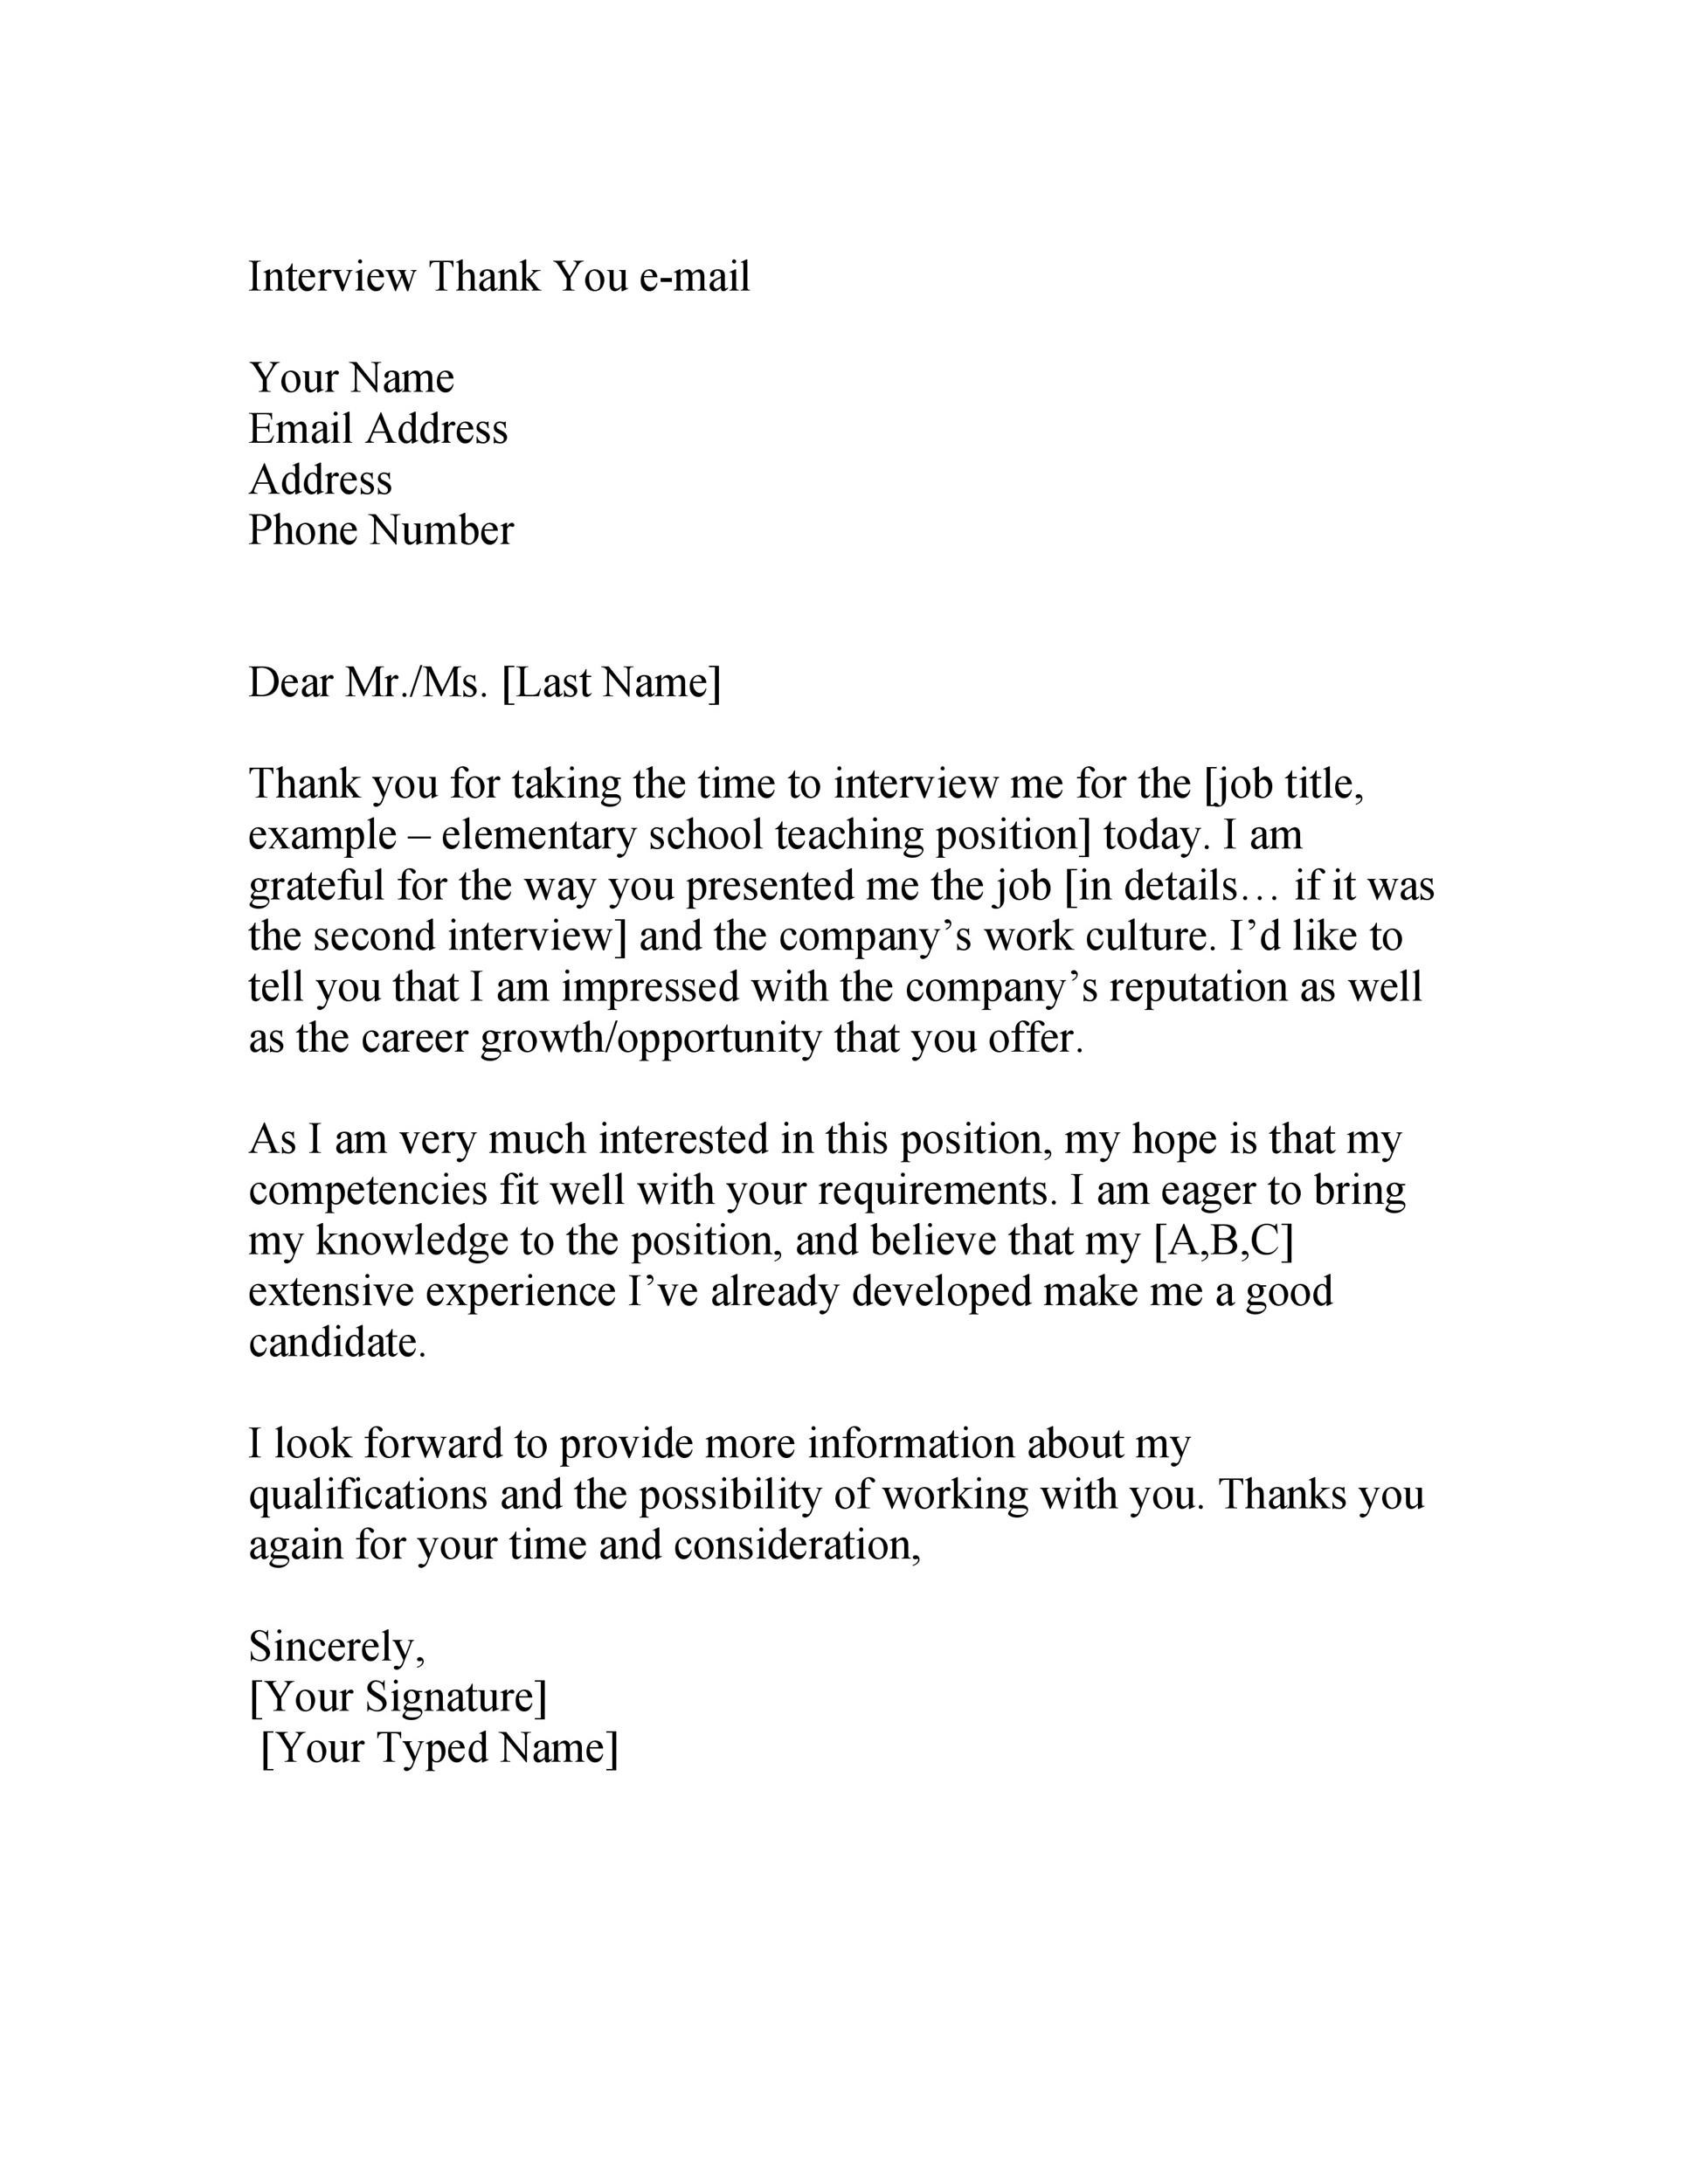 Thank You Letter For Phone Interview Sample from templatelab.com